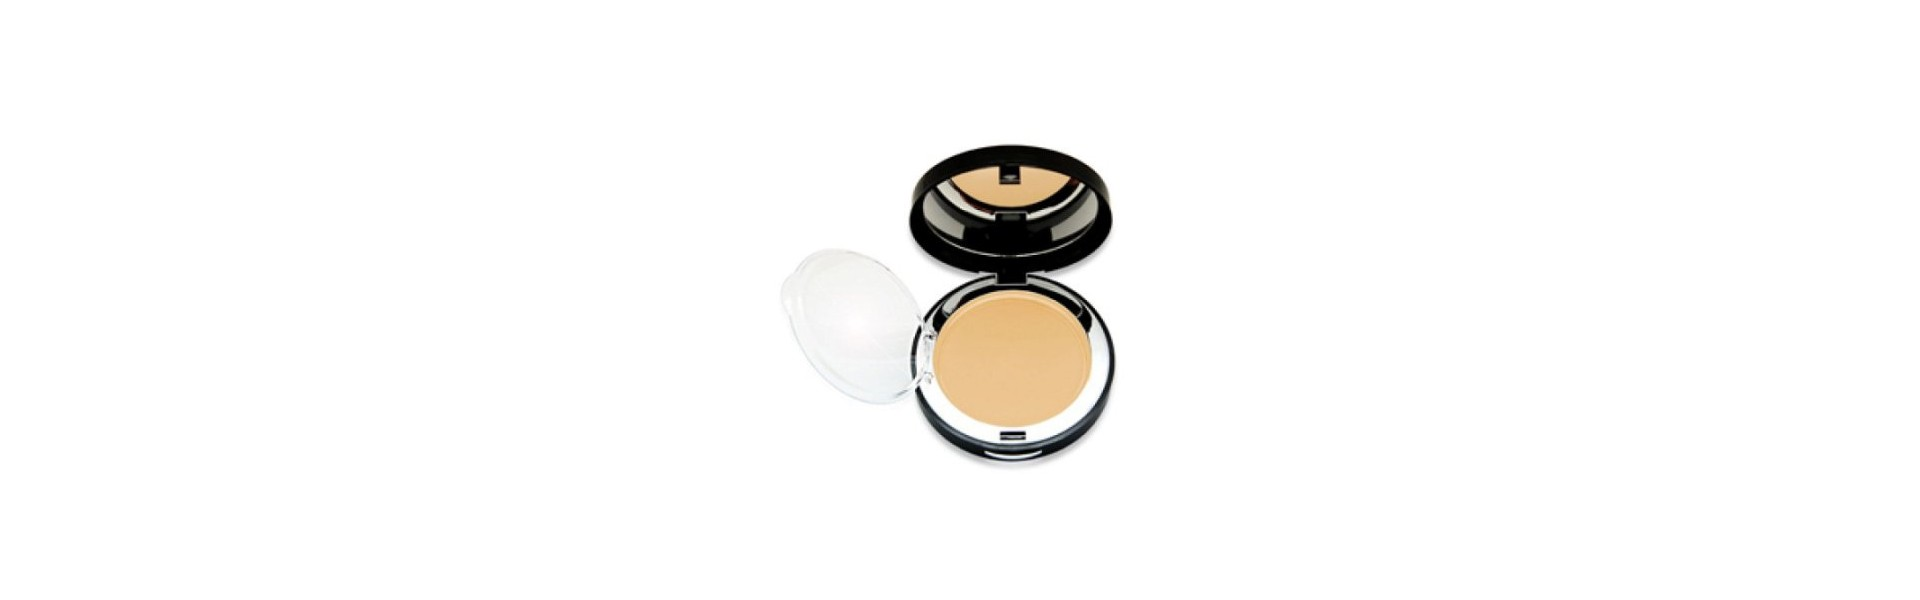 100% pure pressed Foundation by Veana Mineral Line